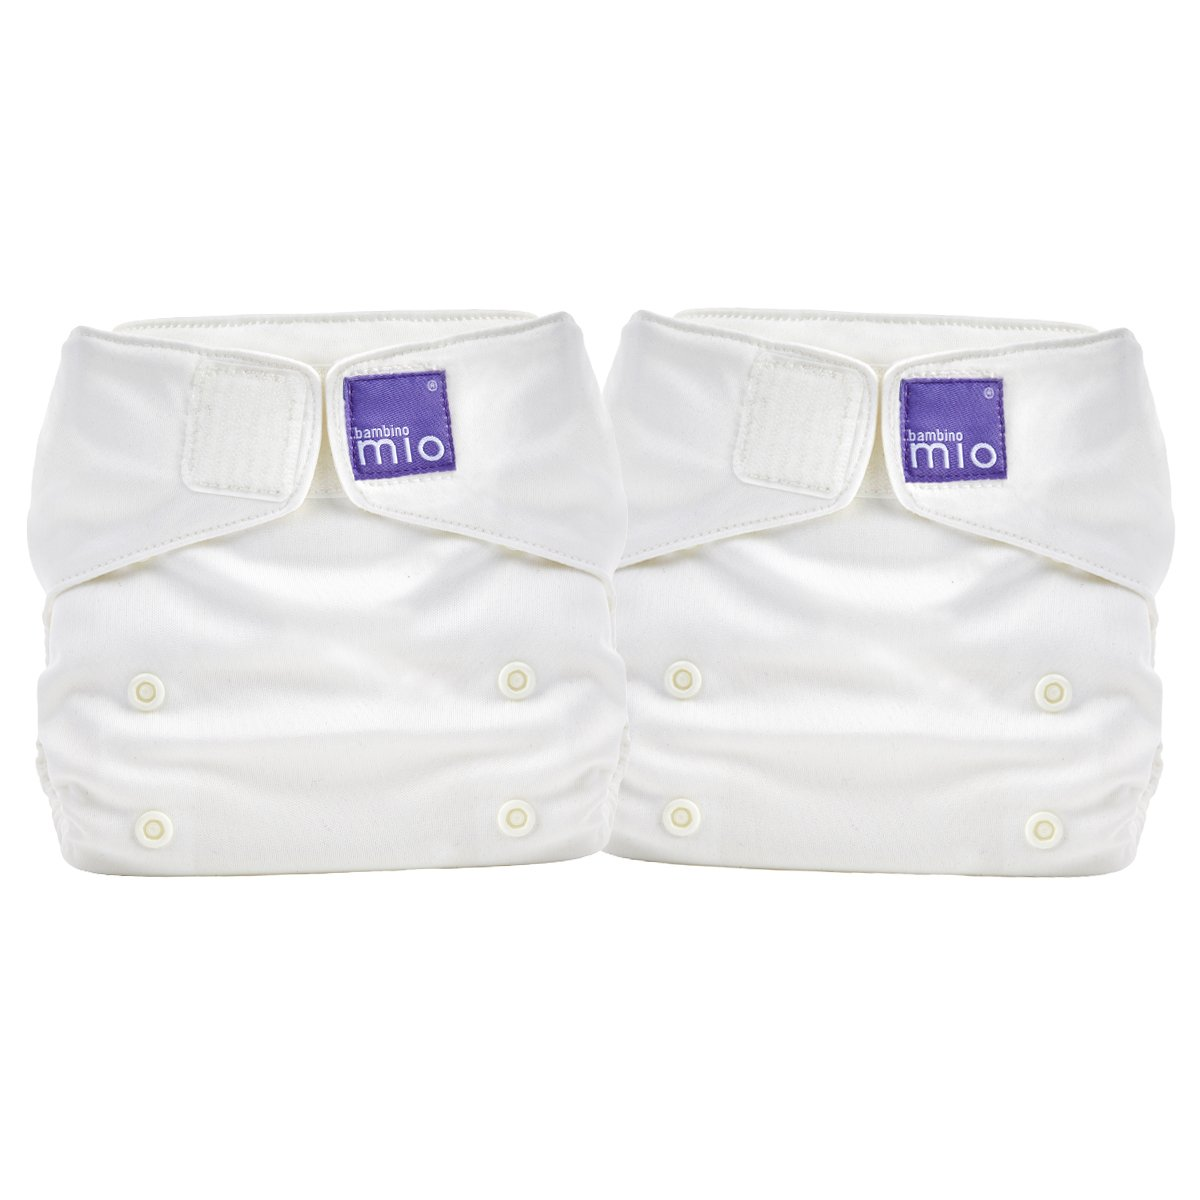 Bambino Mio miosolo all in one nappy, Marshmallow (pack of 2) 2SO A